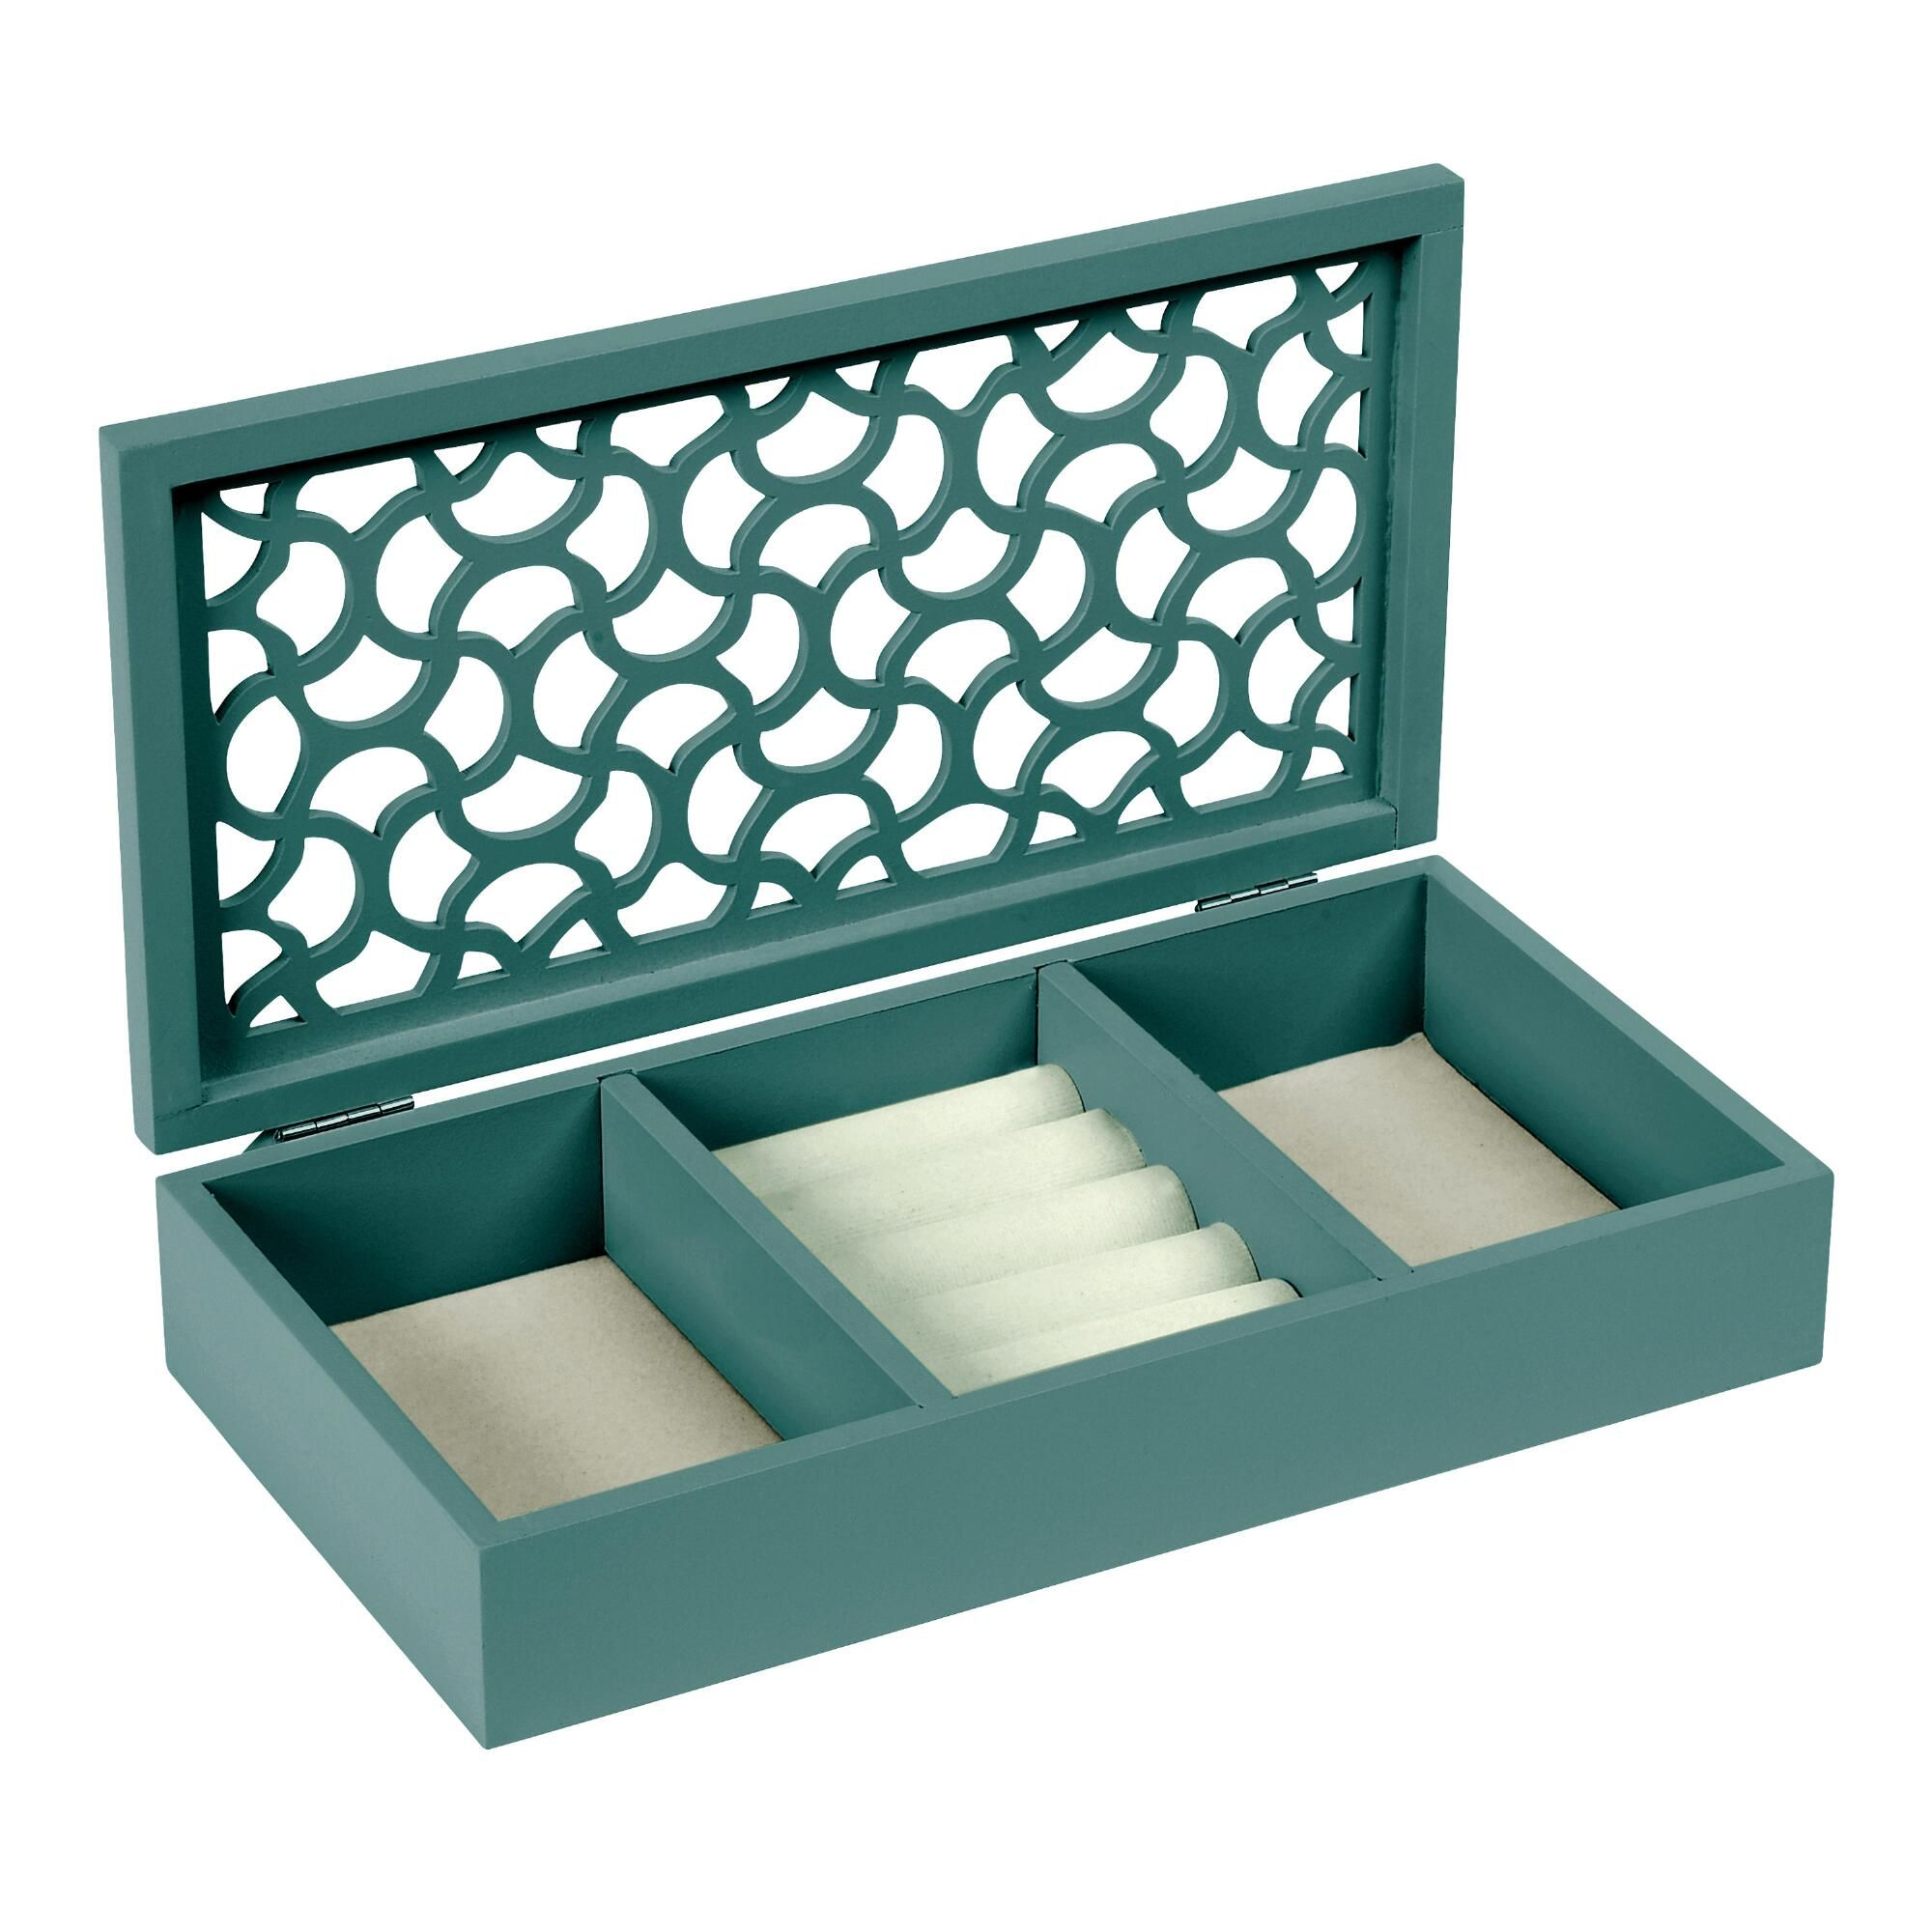 Your Treasured Jewels And Trinkets Find A Stylish Home Inside This Lovely Box The Lif Christmas Tree Store Christmas Tree Shop Christmas Decorations Clearance